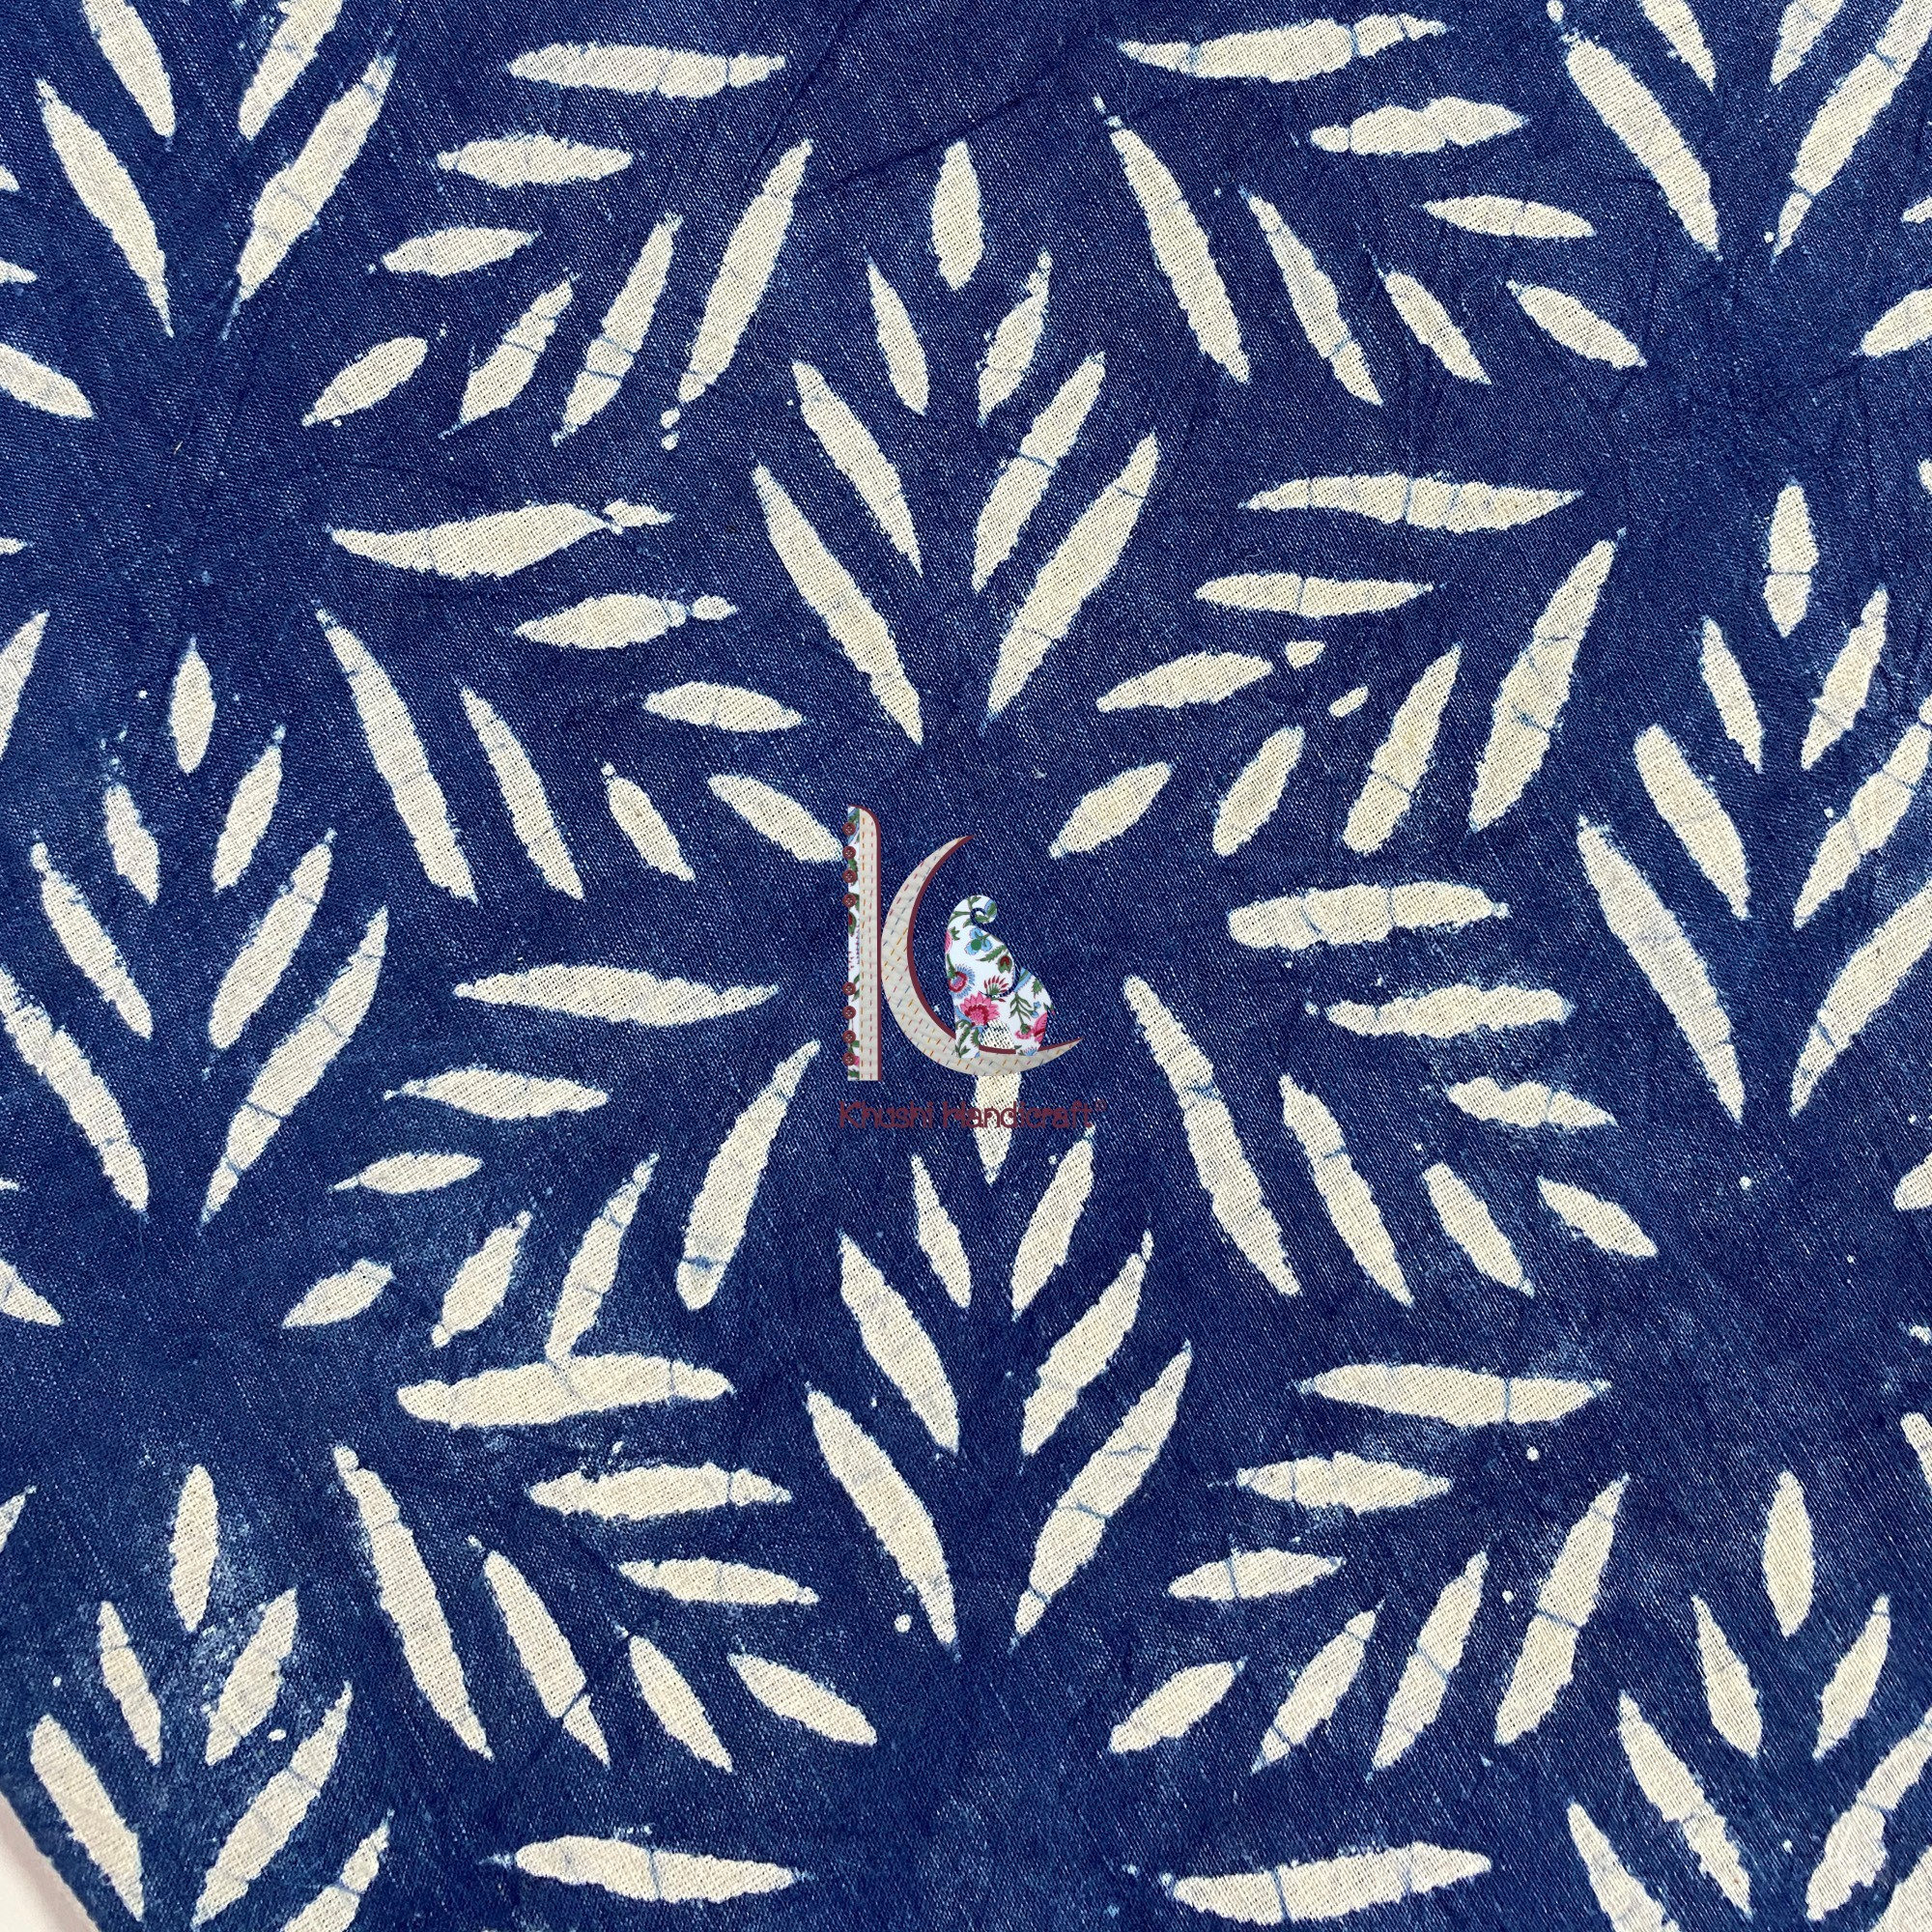 Natural Indigo Dyed Cotton Dress Material Fabric For Garments